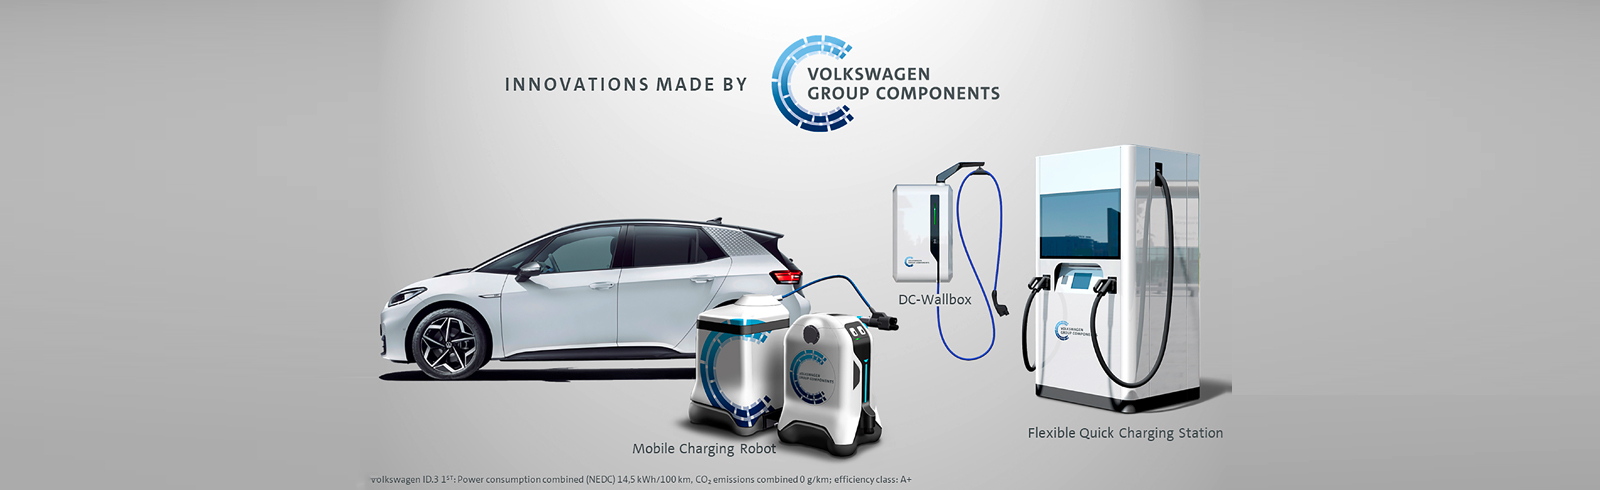 Volkswagen Group Components presented a DC wallbox with bi-directional charging support